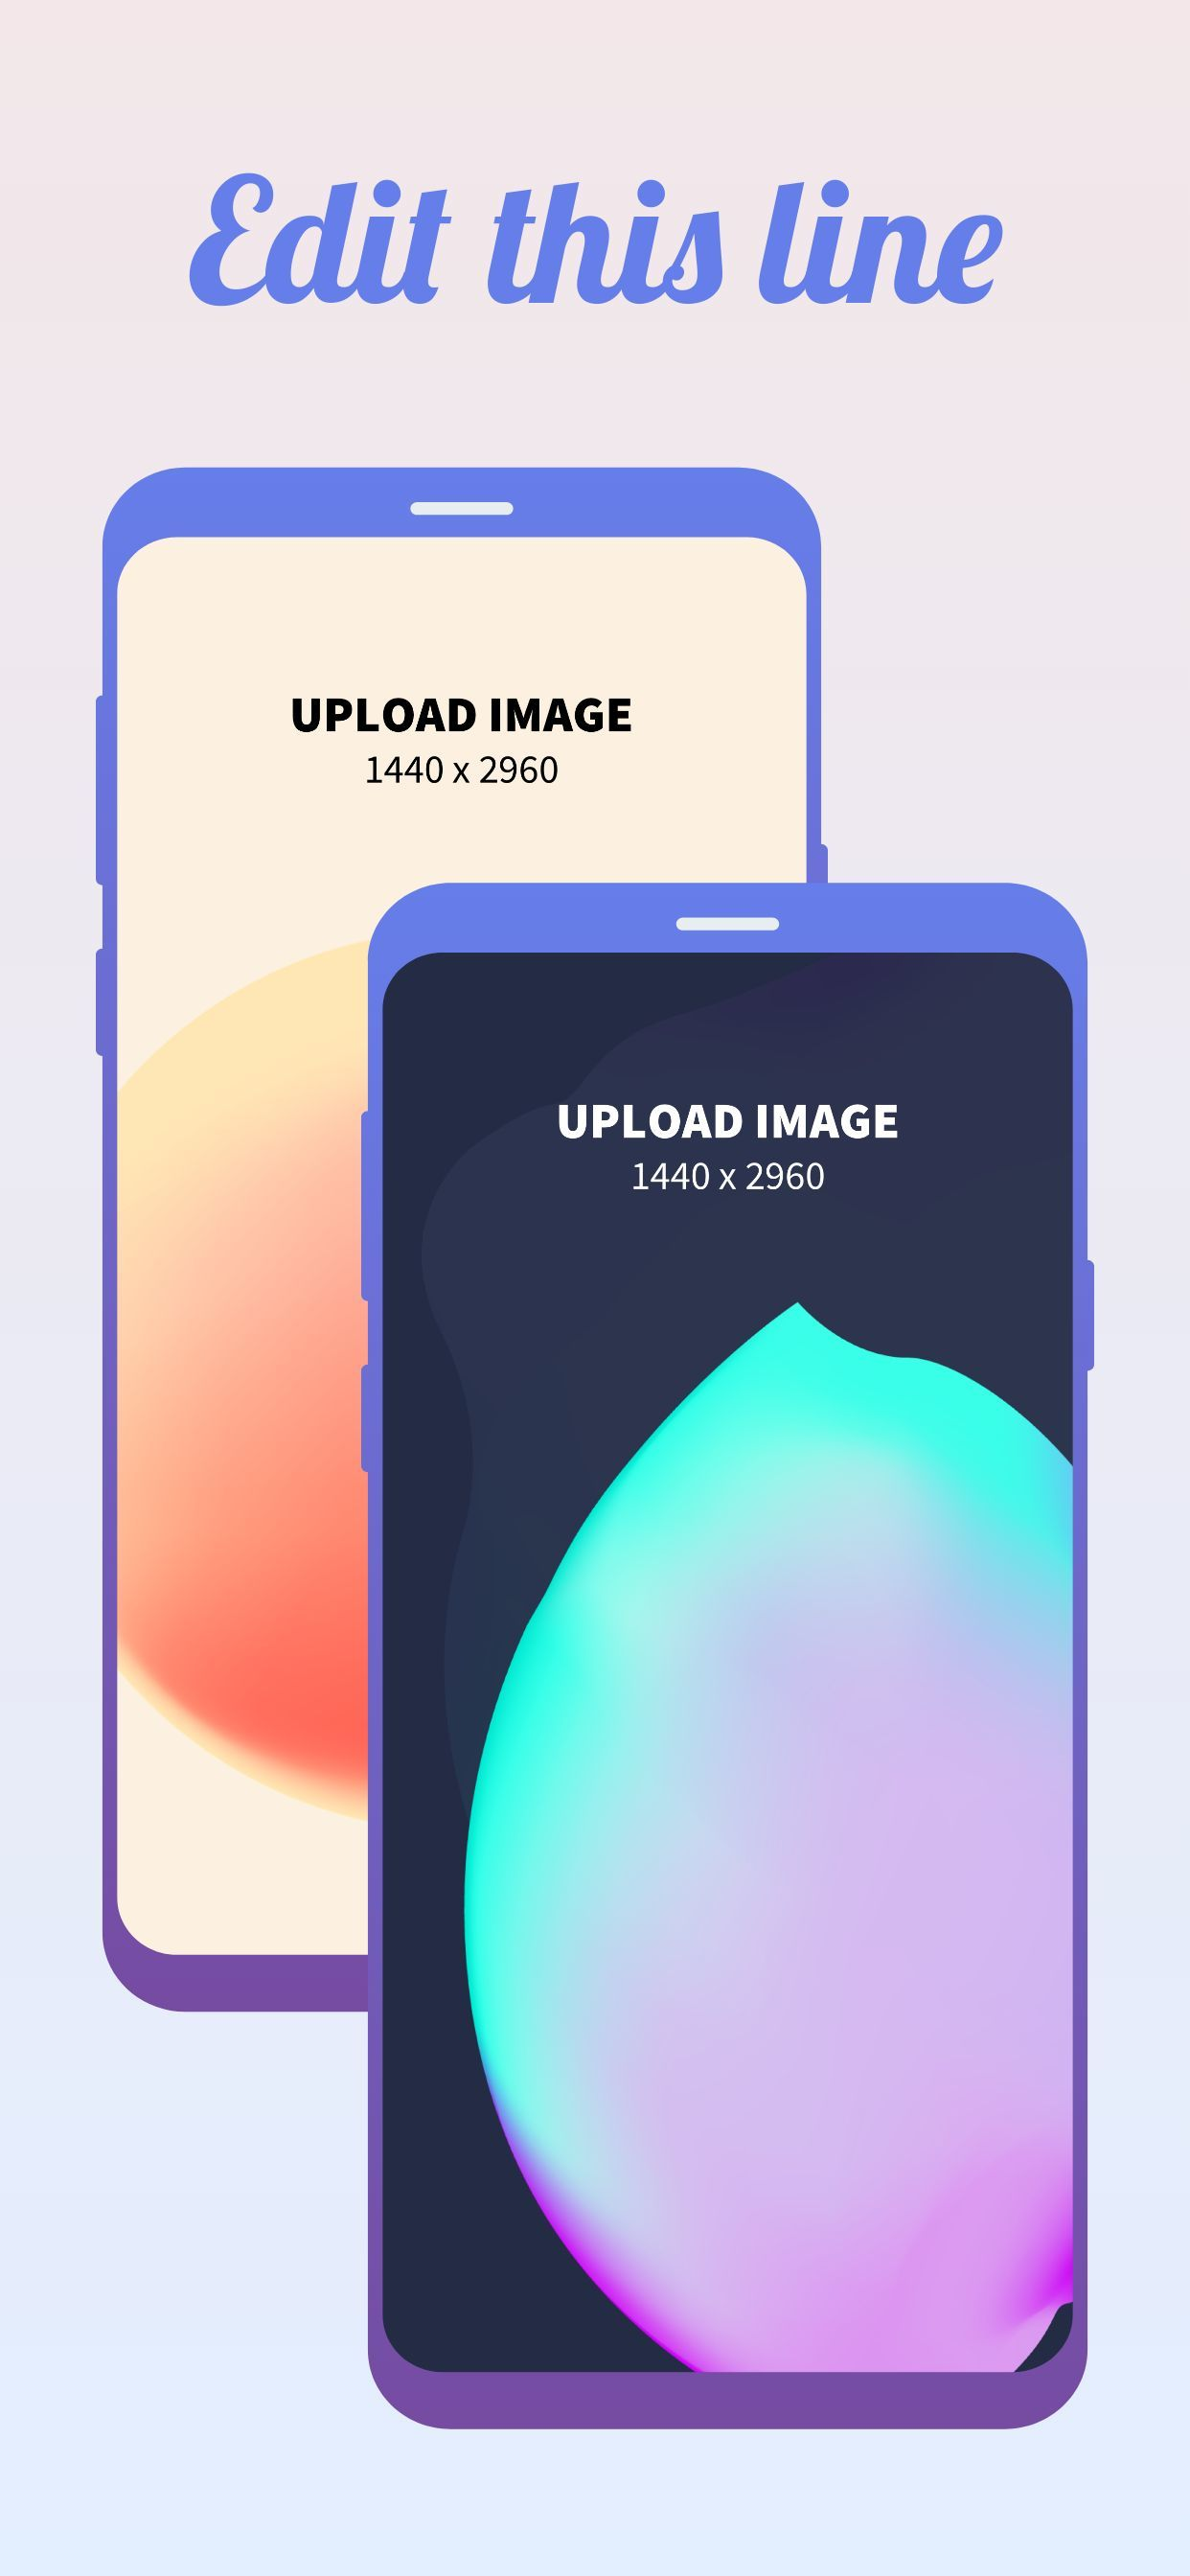 Samsung S9 Screenshot 7 template. Quickly edit text, colors, images, and more for free.